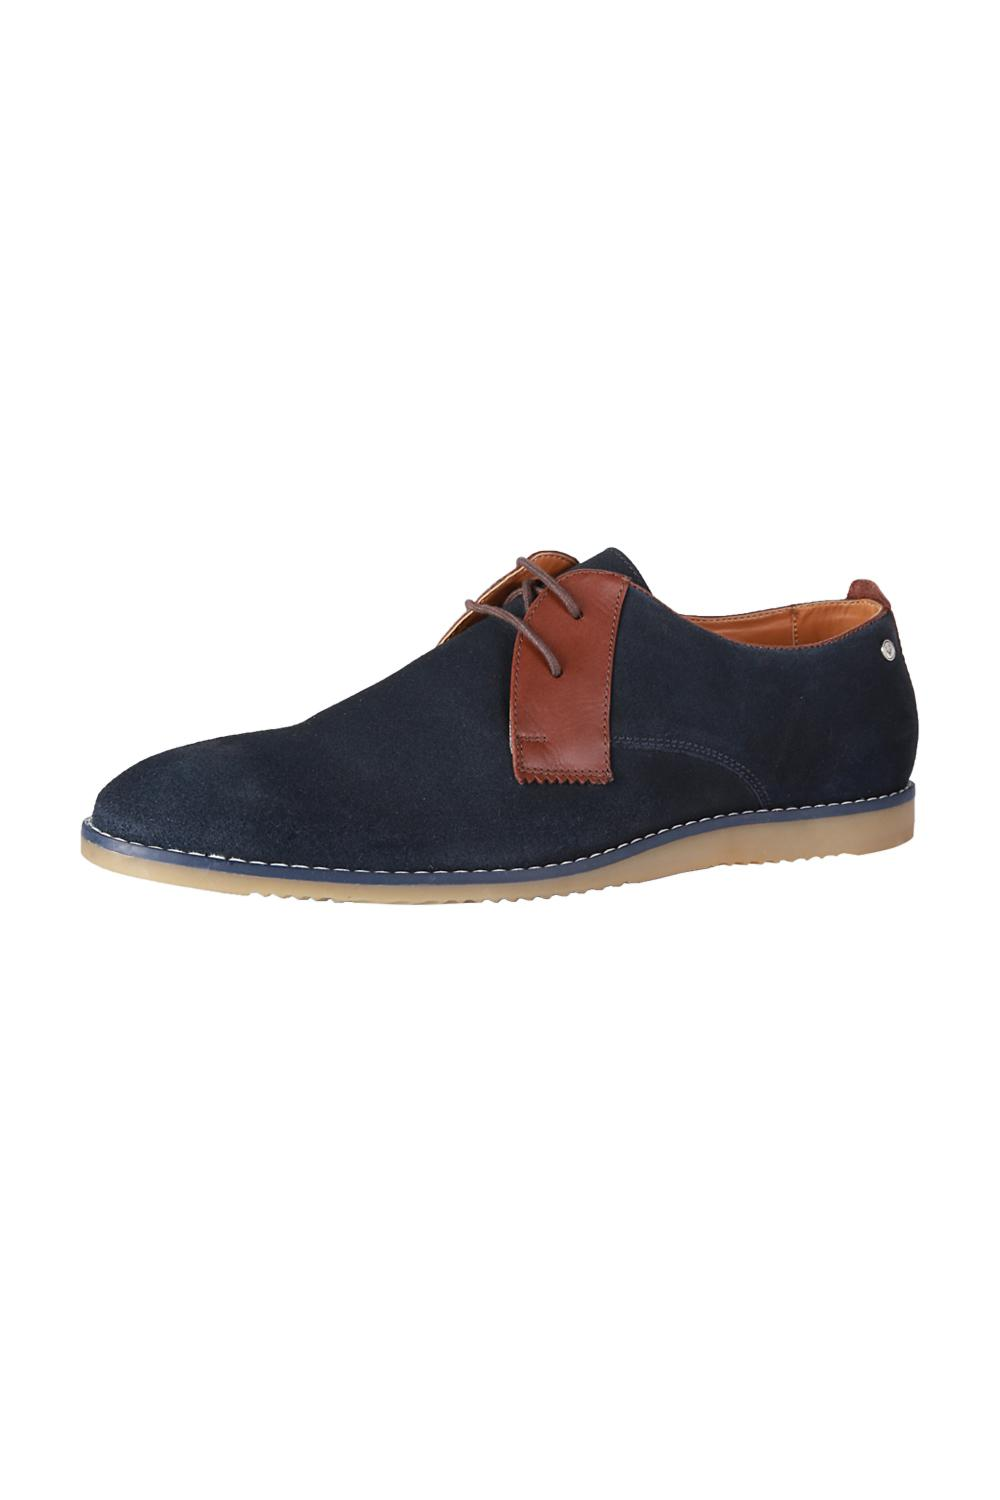 c755038b91427d Allen Solly Footwear, Allen Solly Navy Lace Up Shoes for Men at  Allensolly.com